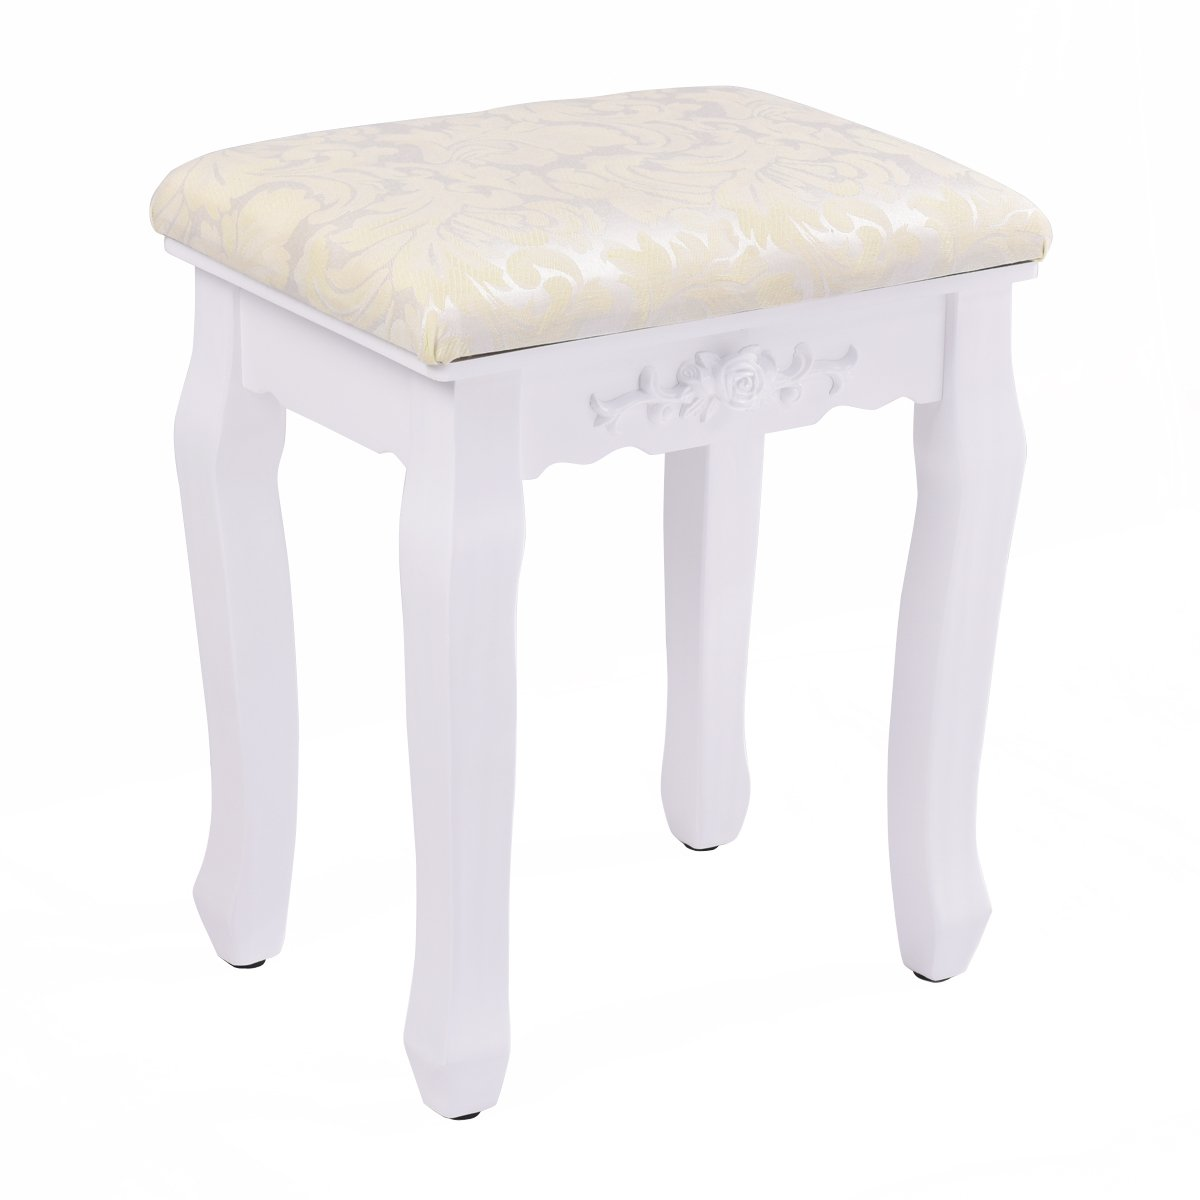 Giantex White Vanity Stool Retro Wave Design Makeup Bench Dressing Stool Pad Cushioned Chair Piano Seat